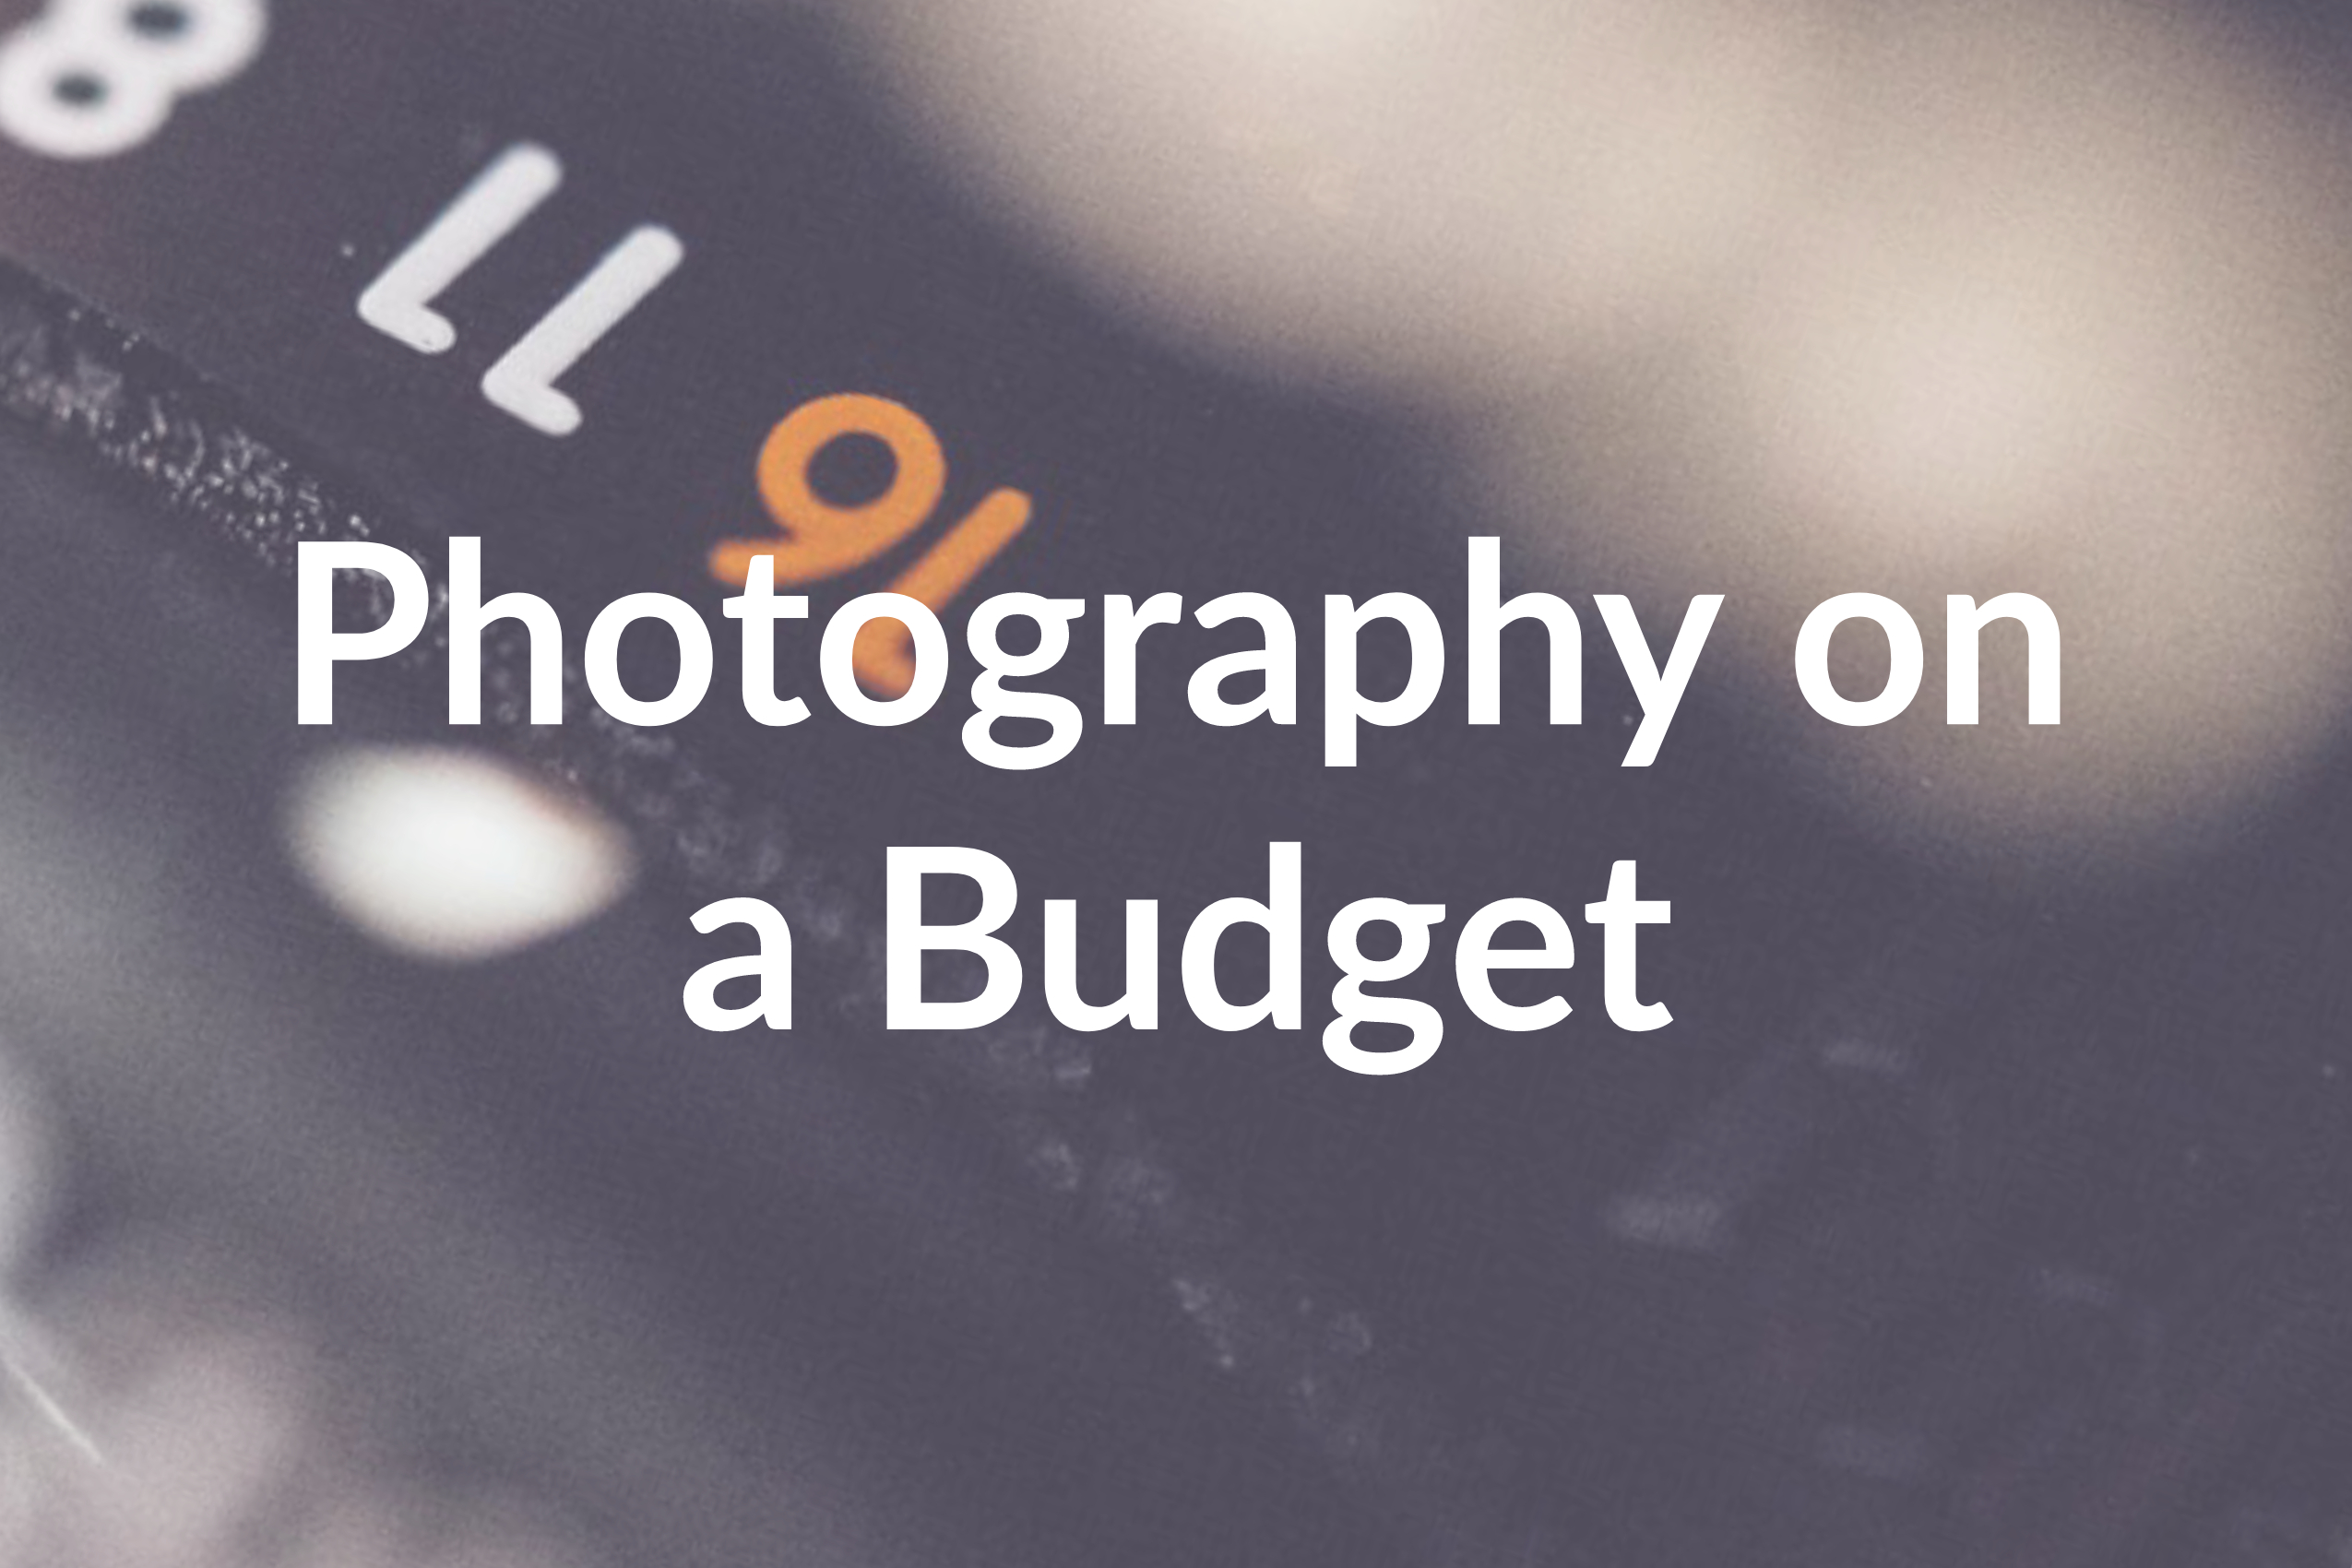 Save Money with Our 5 Low Budget Photography Tips